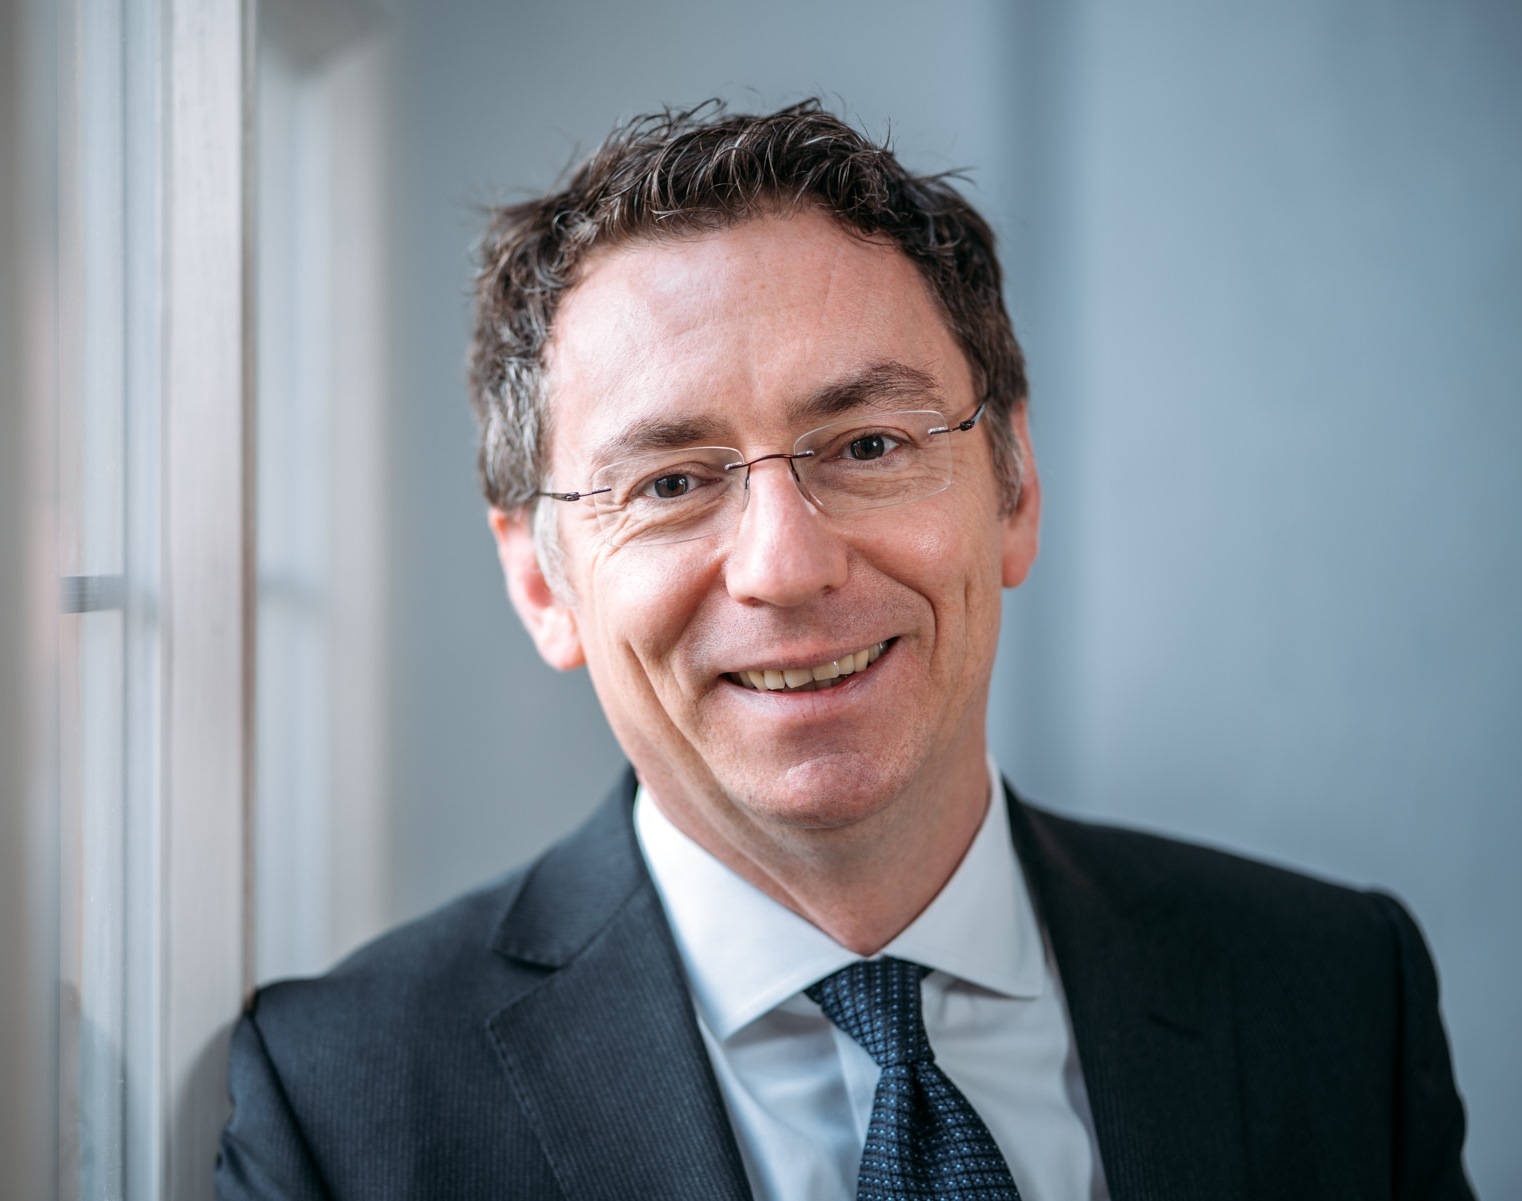 Professor Dr. Christoph Safferling